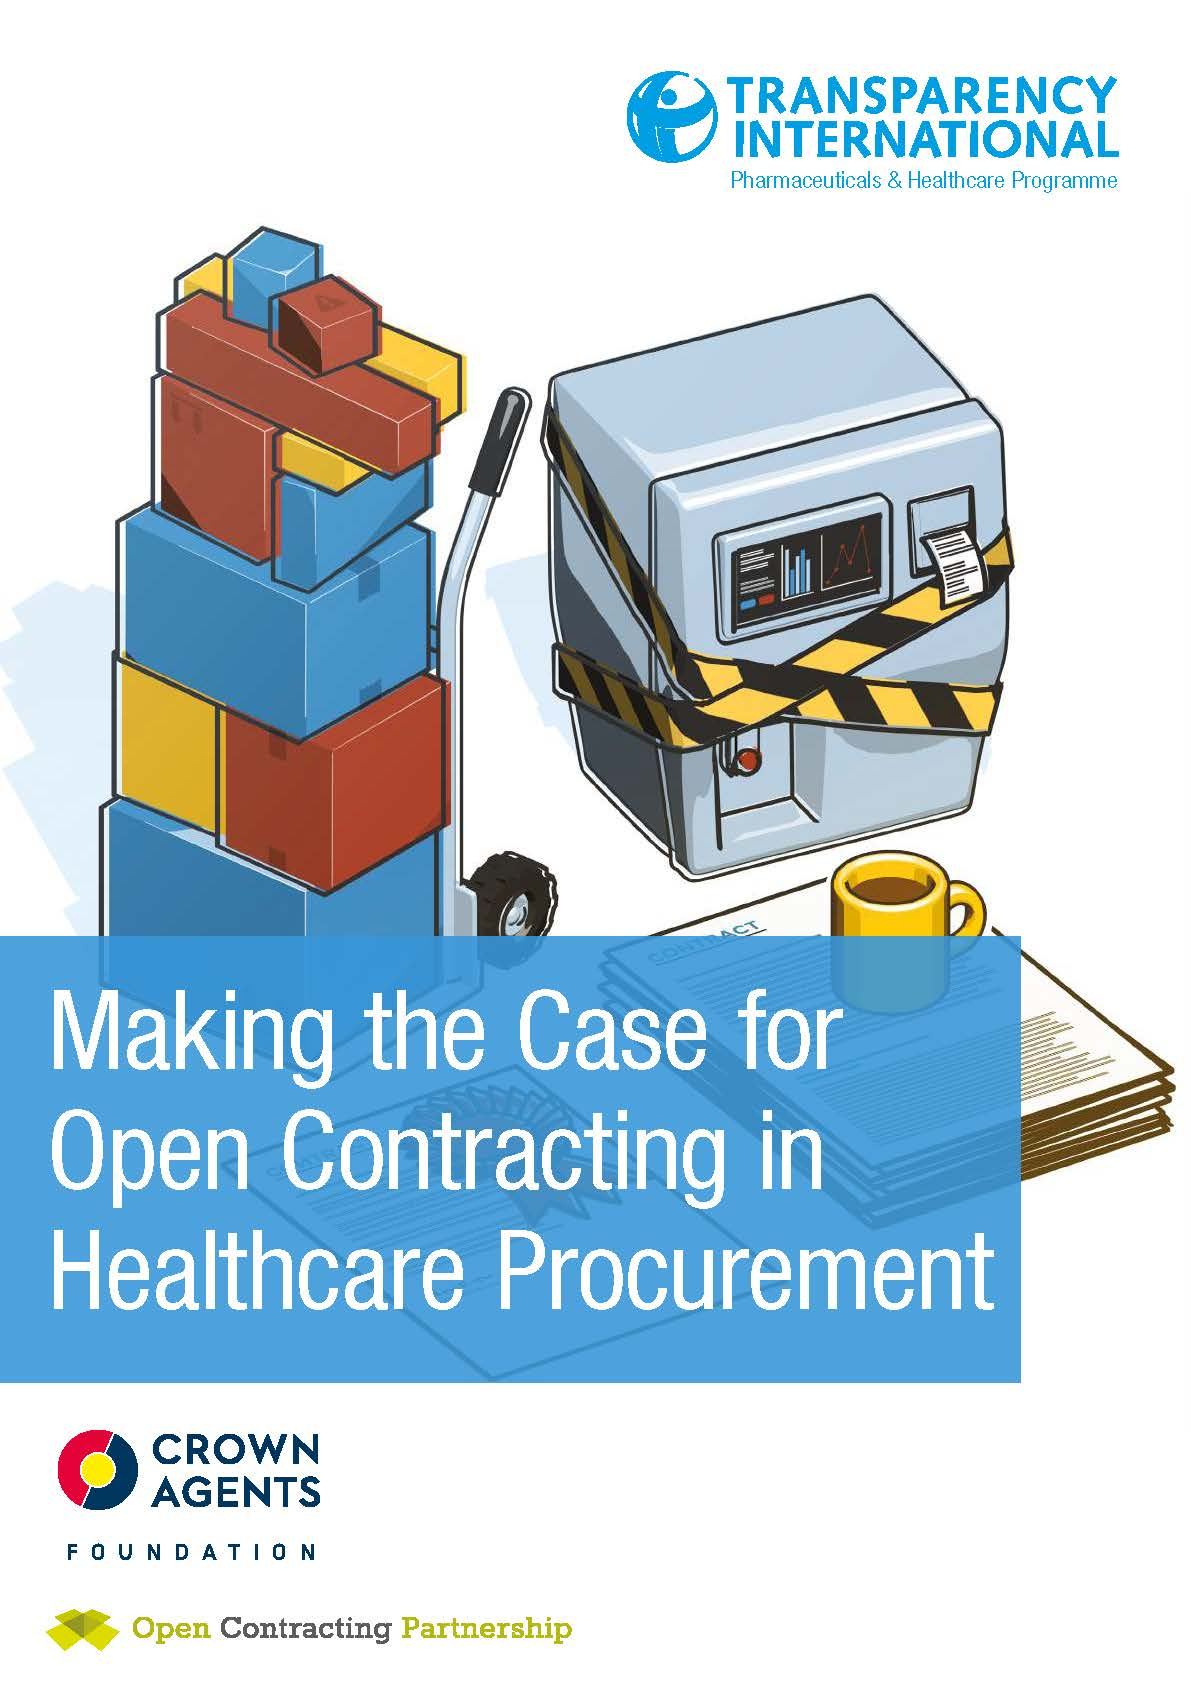 Pages from TI_Making the Case for Open_Contracting Healthcare_2017.jpg